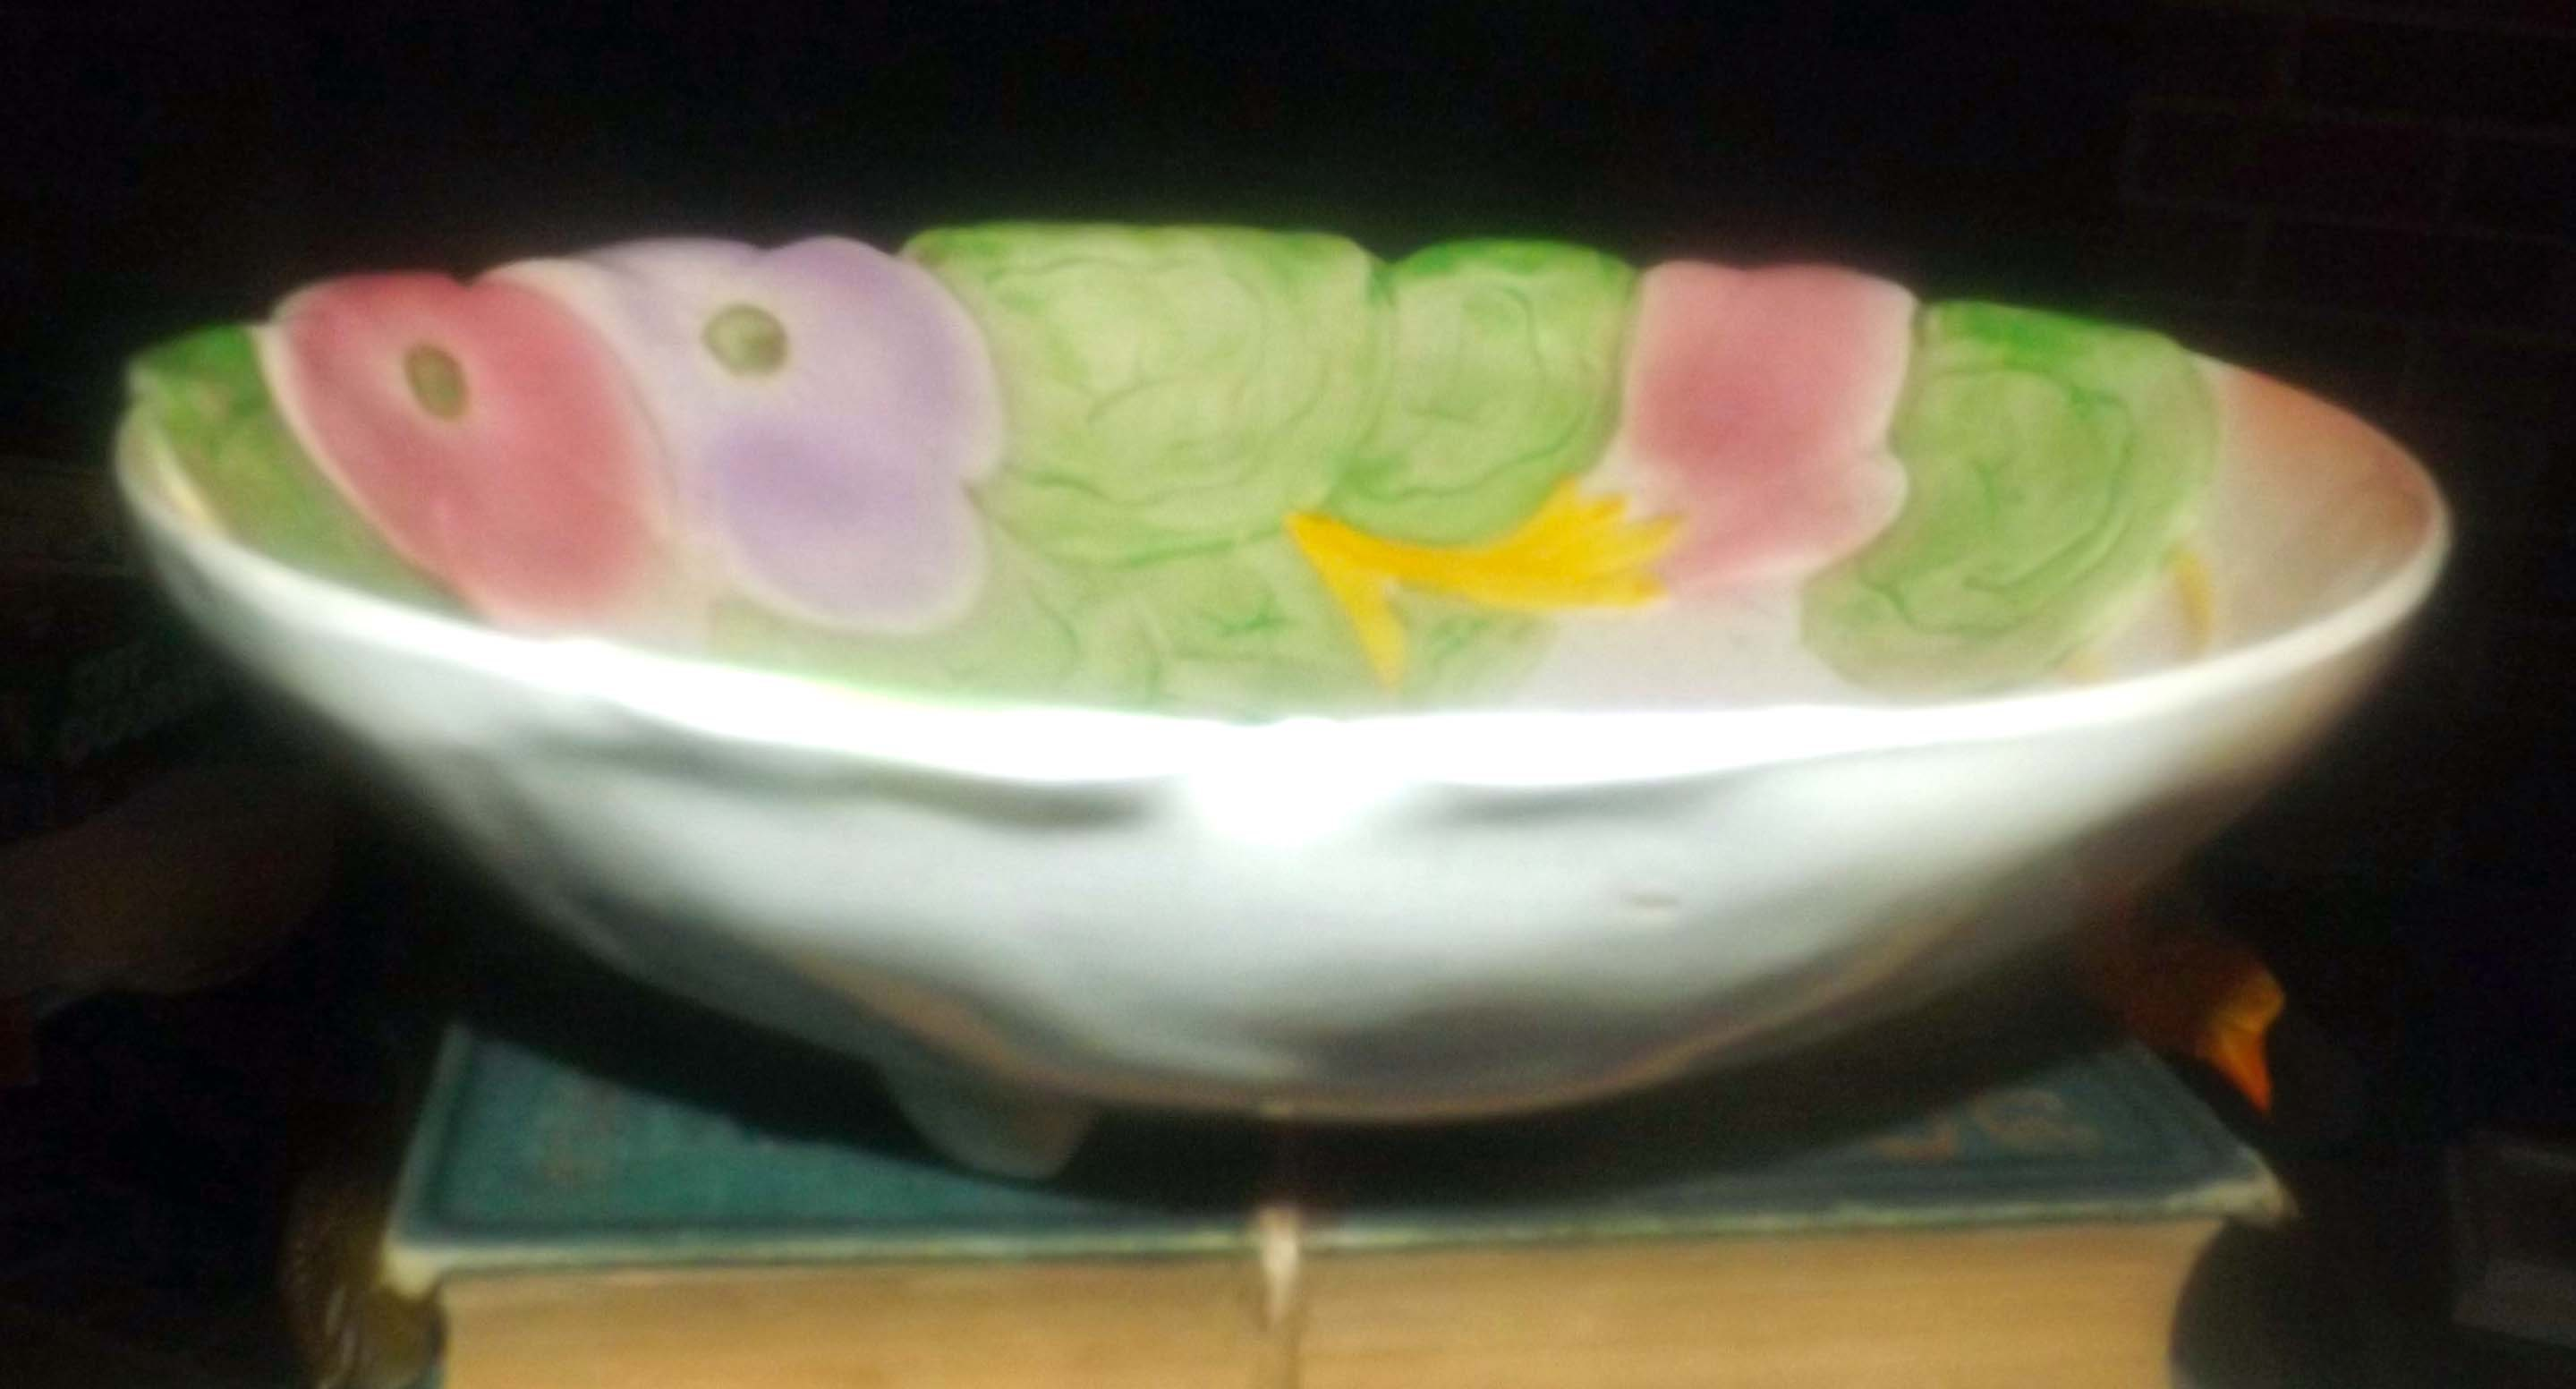 purple florals. Pink Early mid-century Avon Ware figural flower-shaped 1940s tri-footed salad serving bowl in the style of Carltonware